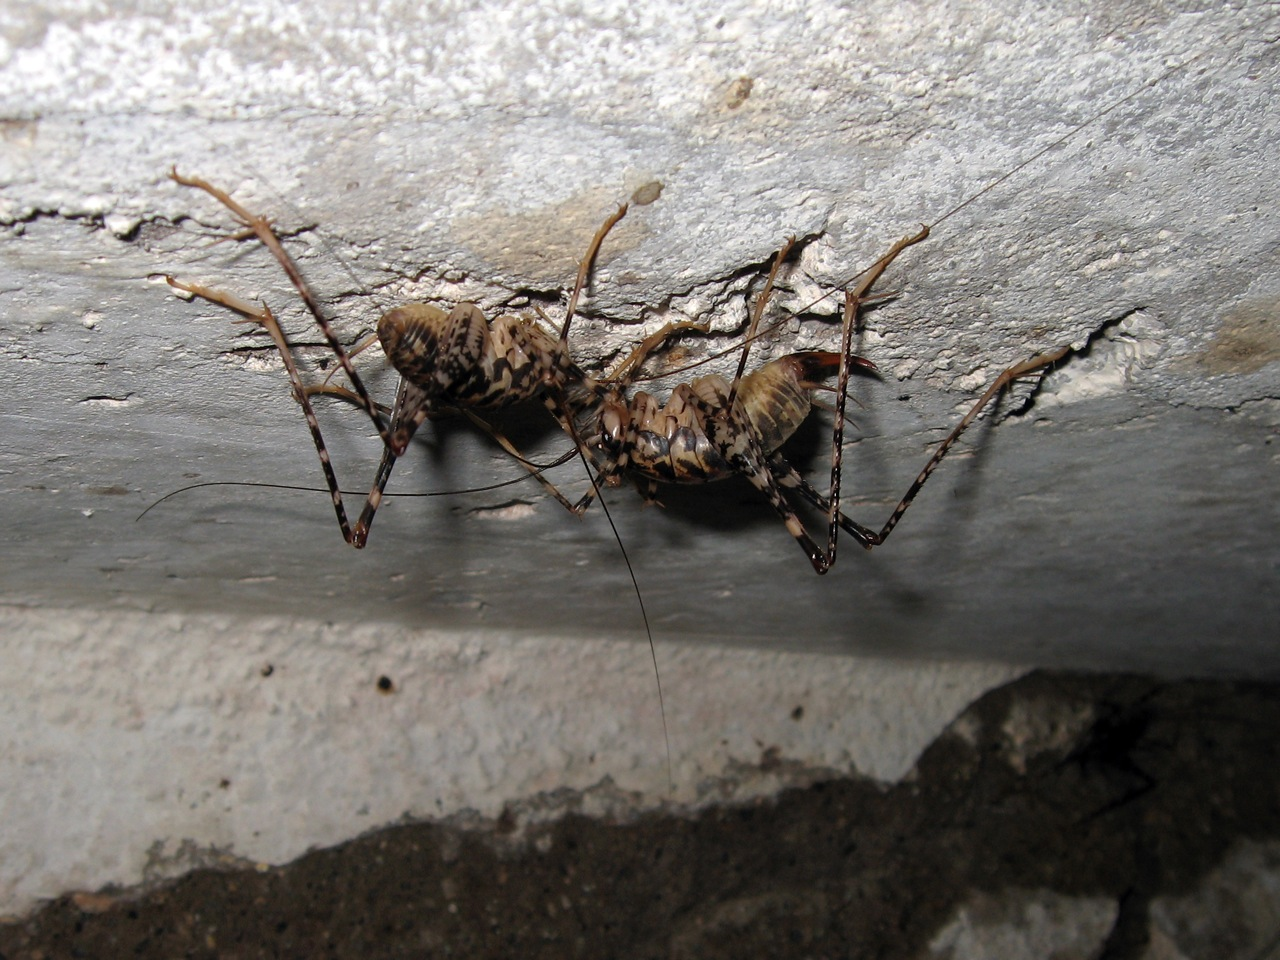 the nasty crickets with pictures in weirdly random forum